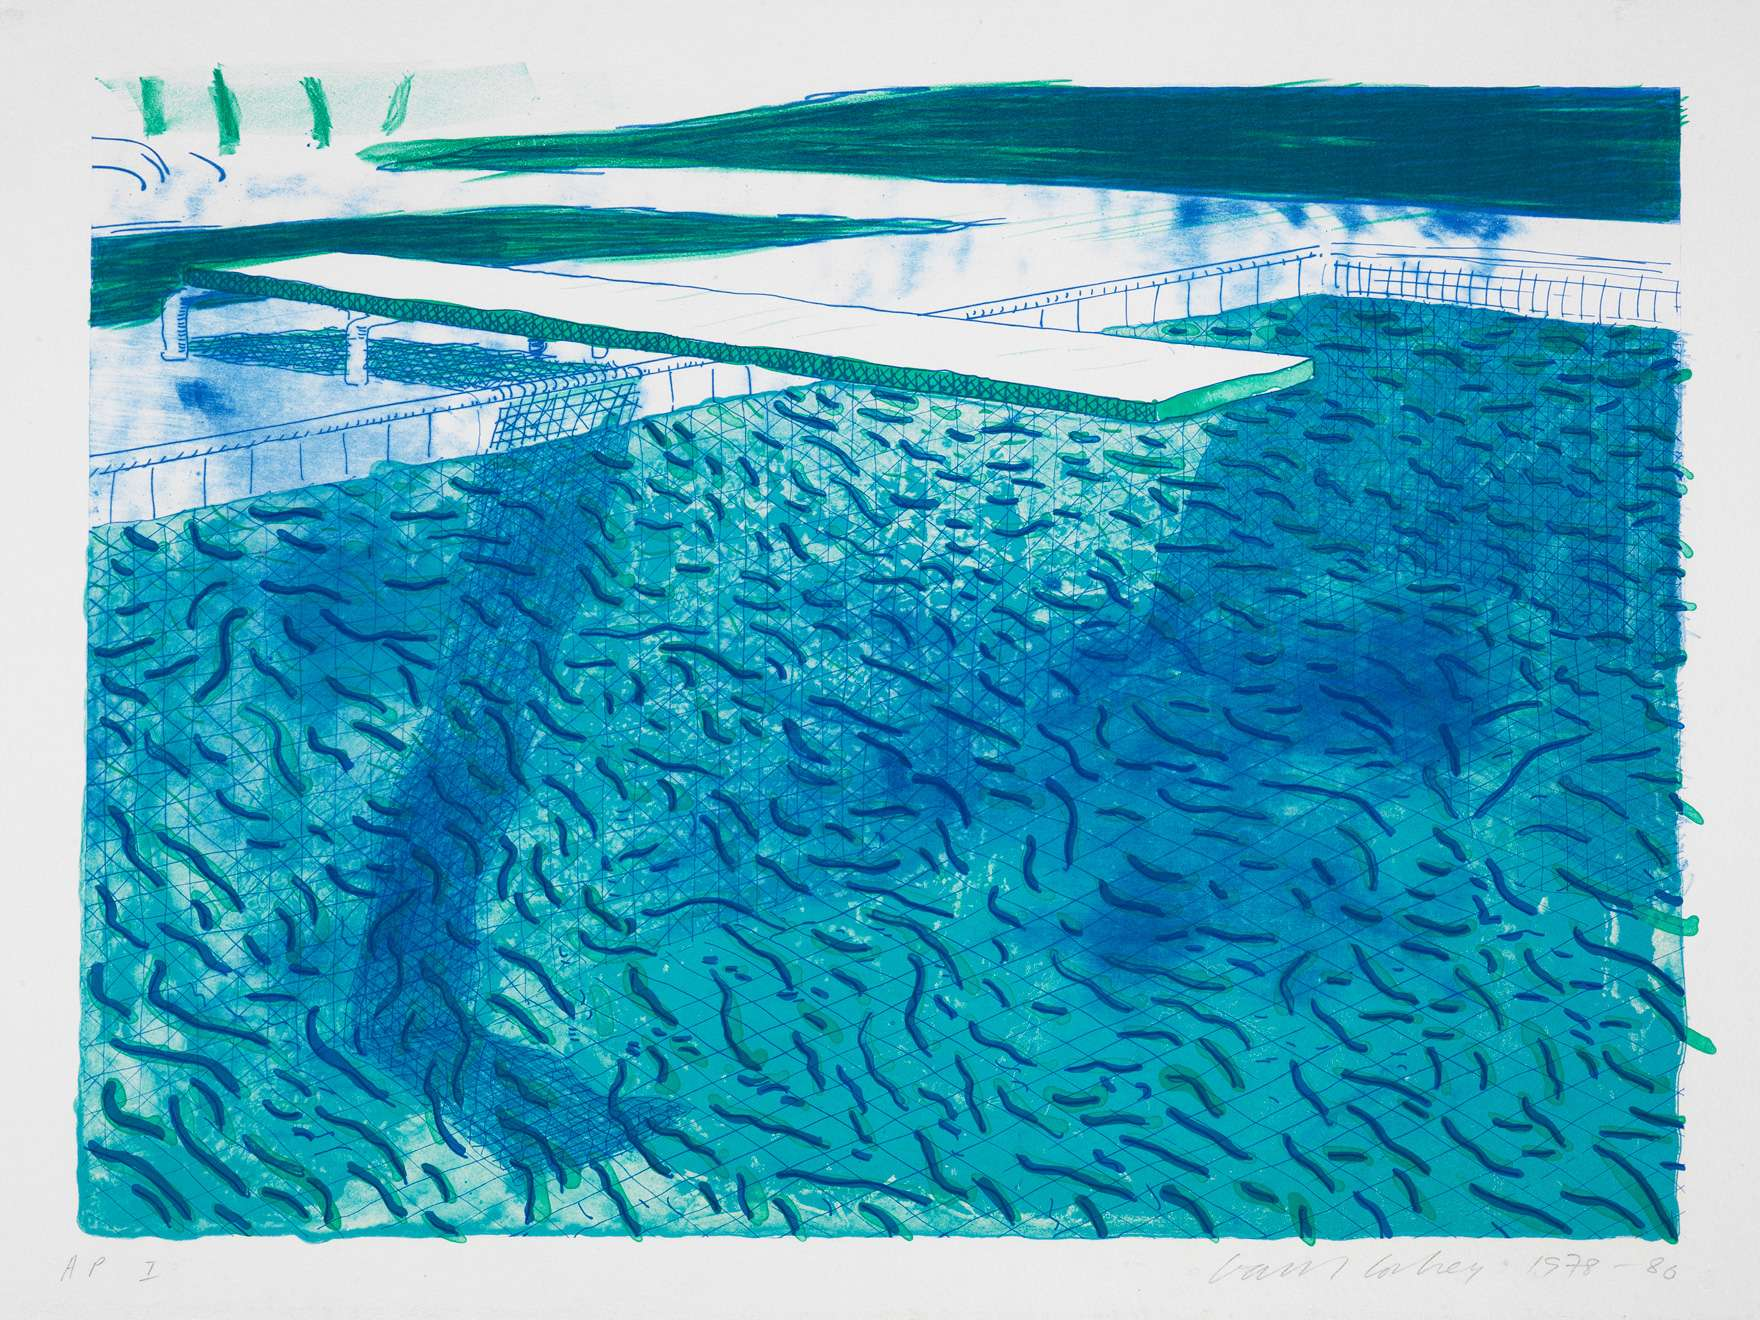 David Hockney, Pool I (Lithograph of Water Made of Thick and Thin Lines, A Green Wash, a Light Blue Wash and a Dark Blue Wash), 1978–80